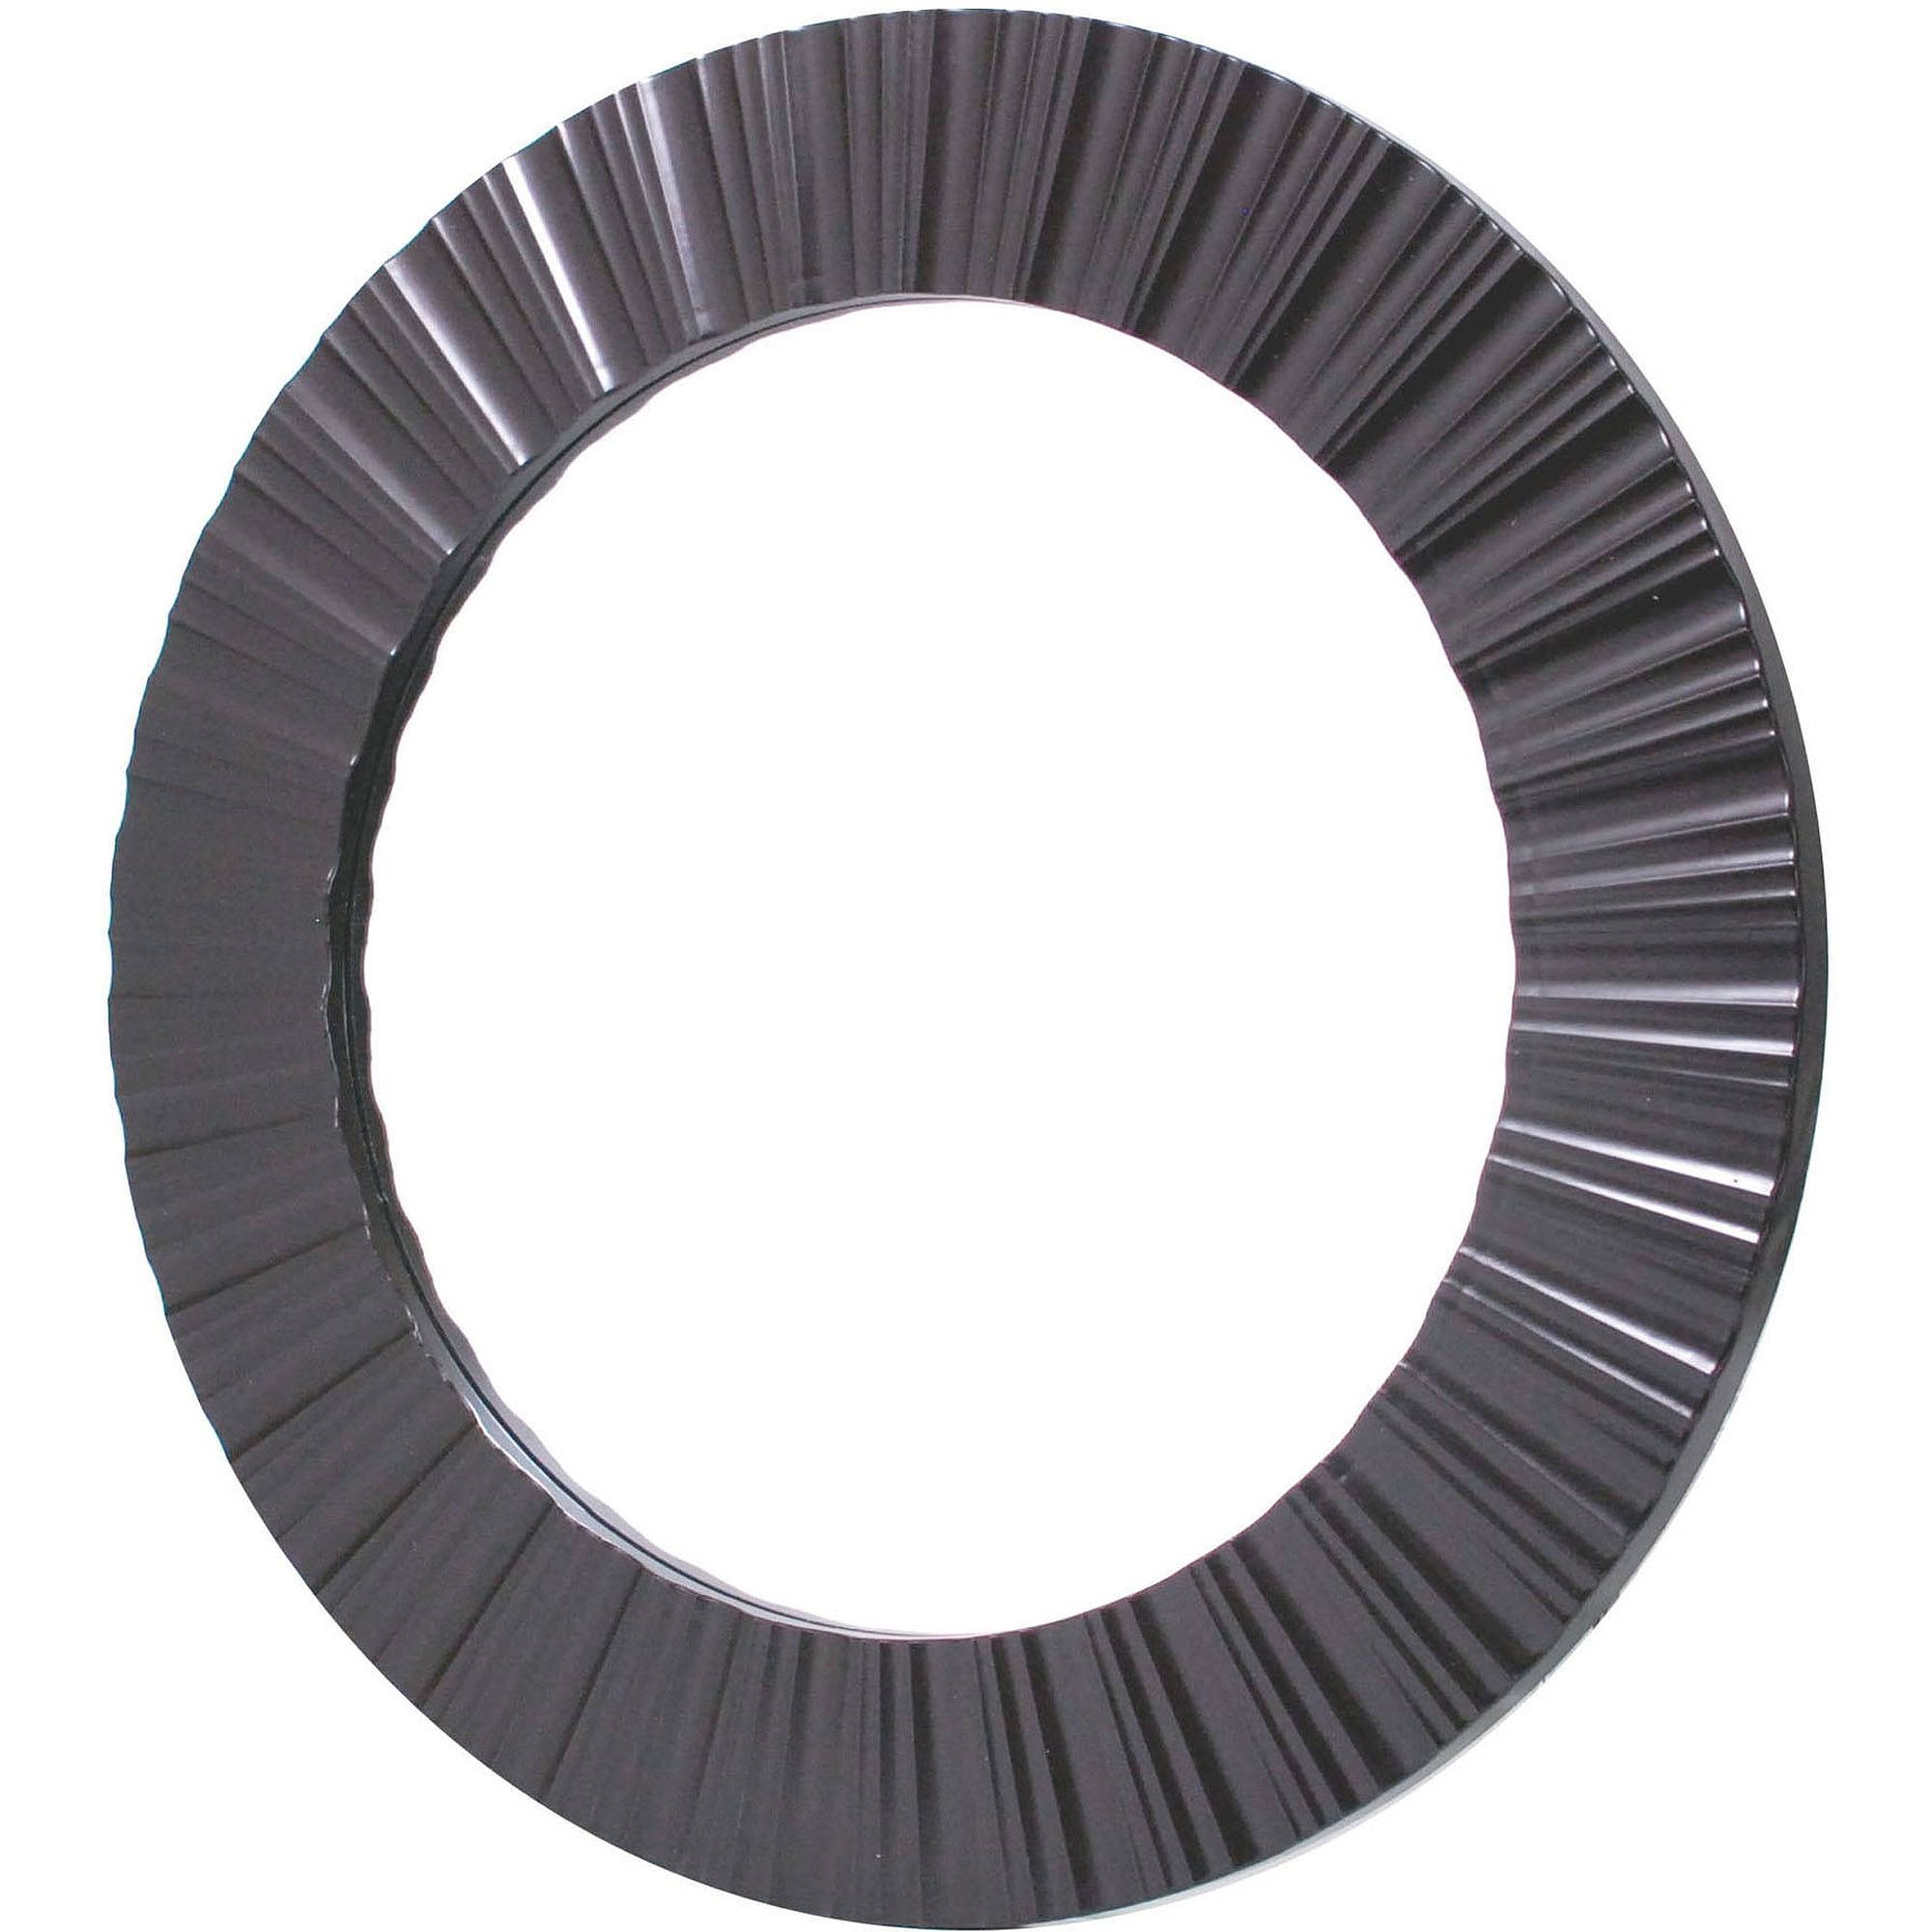 Large Round Mirrors for Black Circle Mirrors (Image 10 of 25)